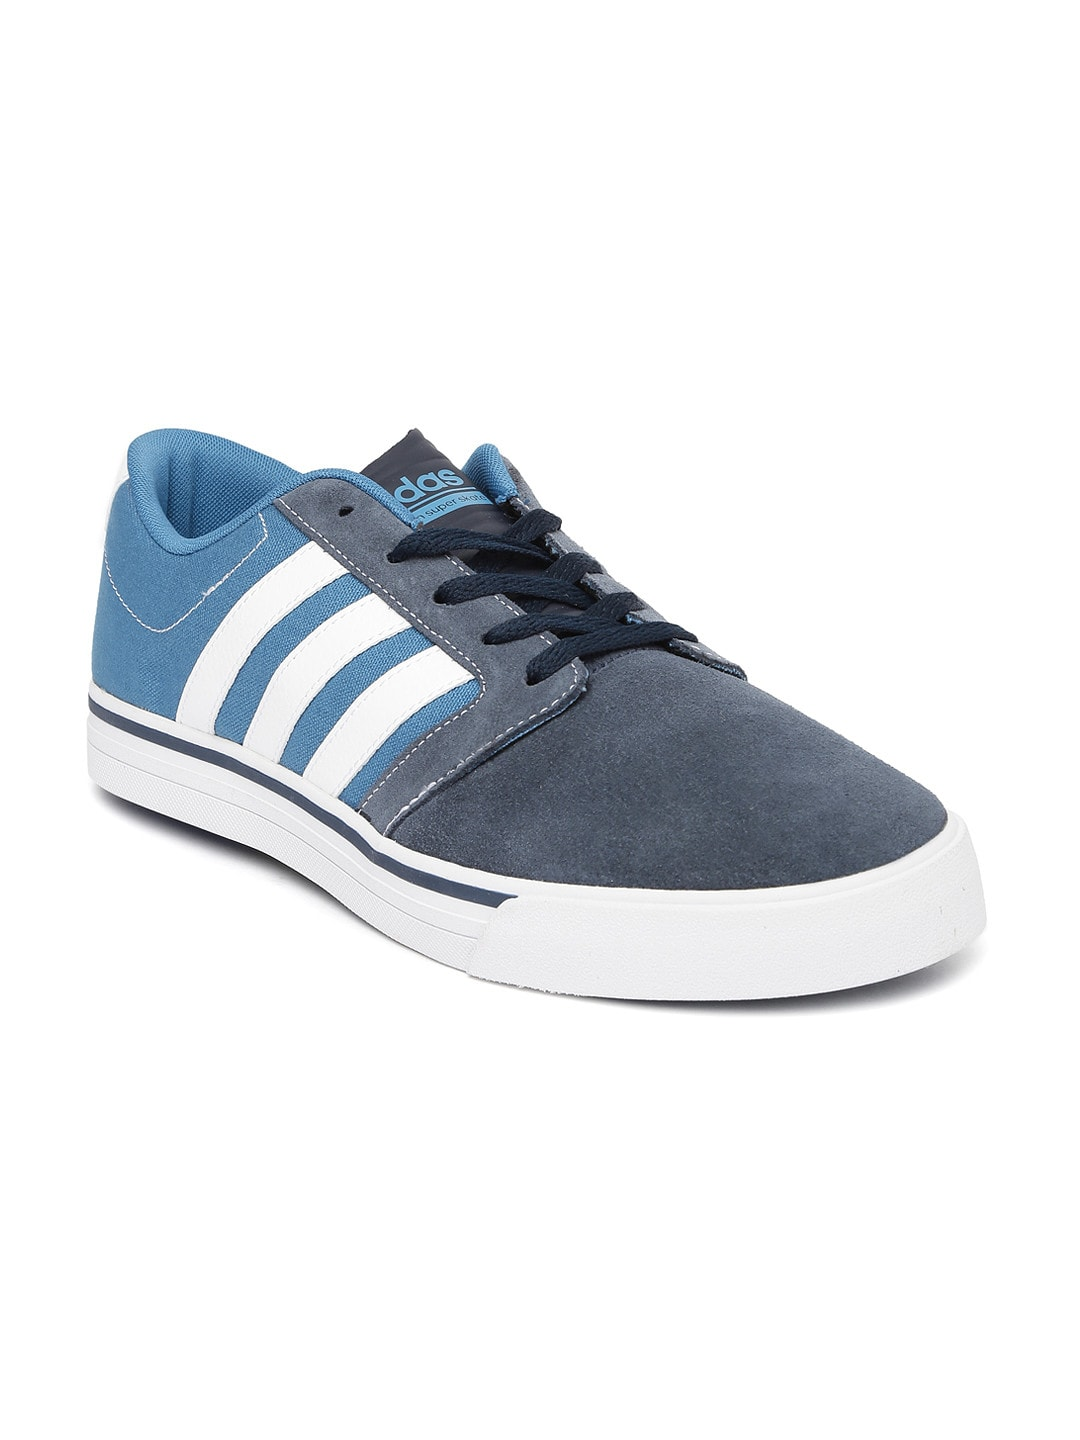 save off 23f71 55e46 ... discount code for adidas neo skate orange grey adidas neo skate gold  ad569 1dfed